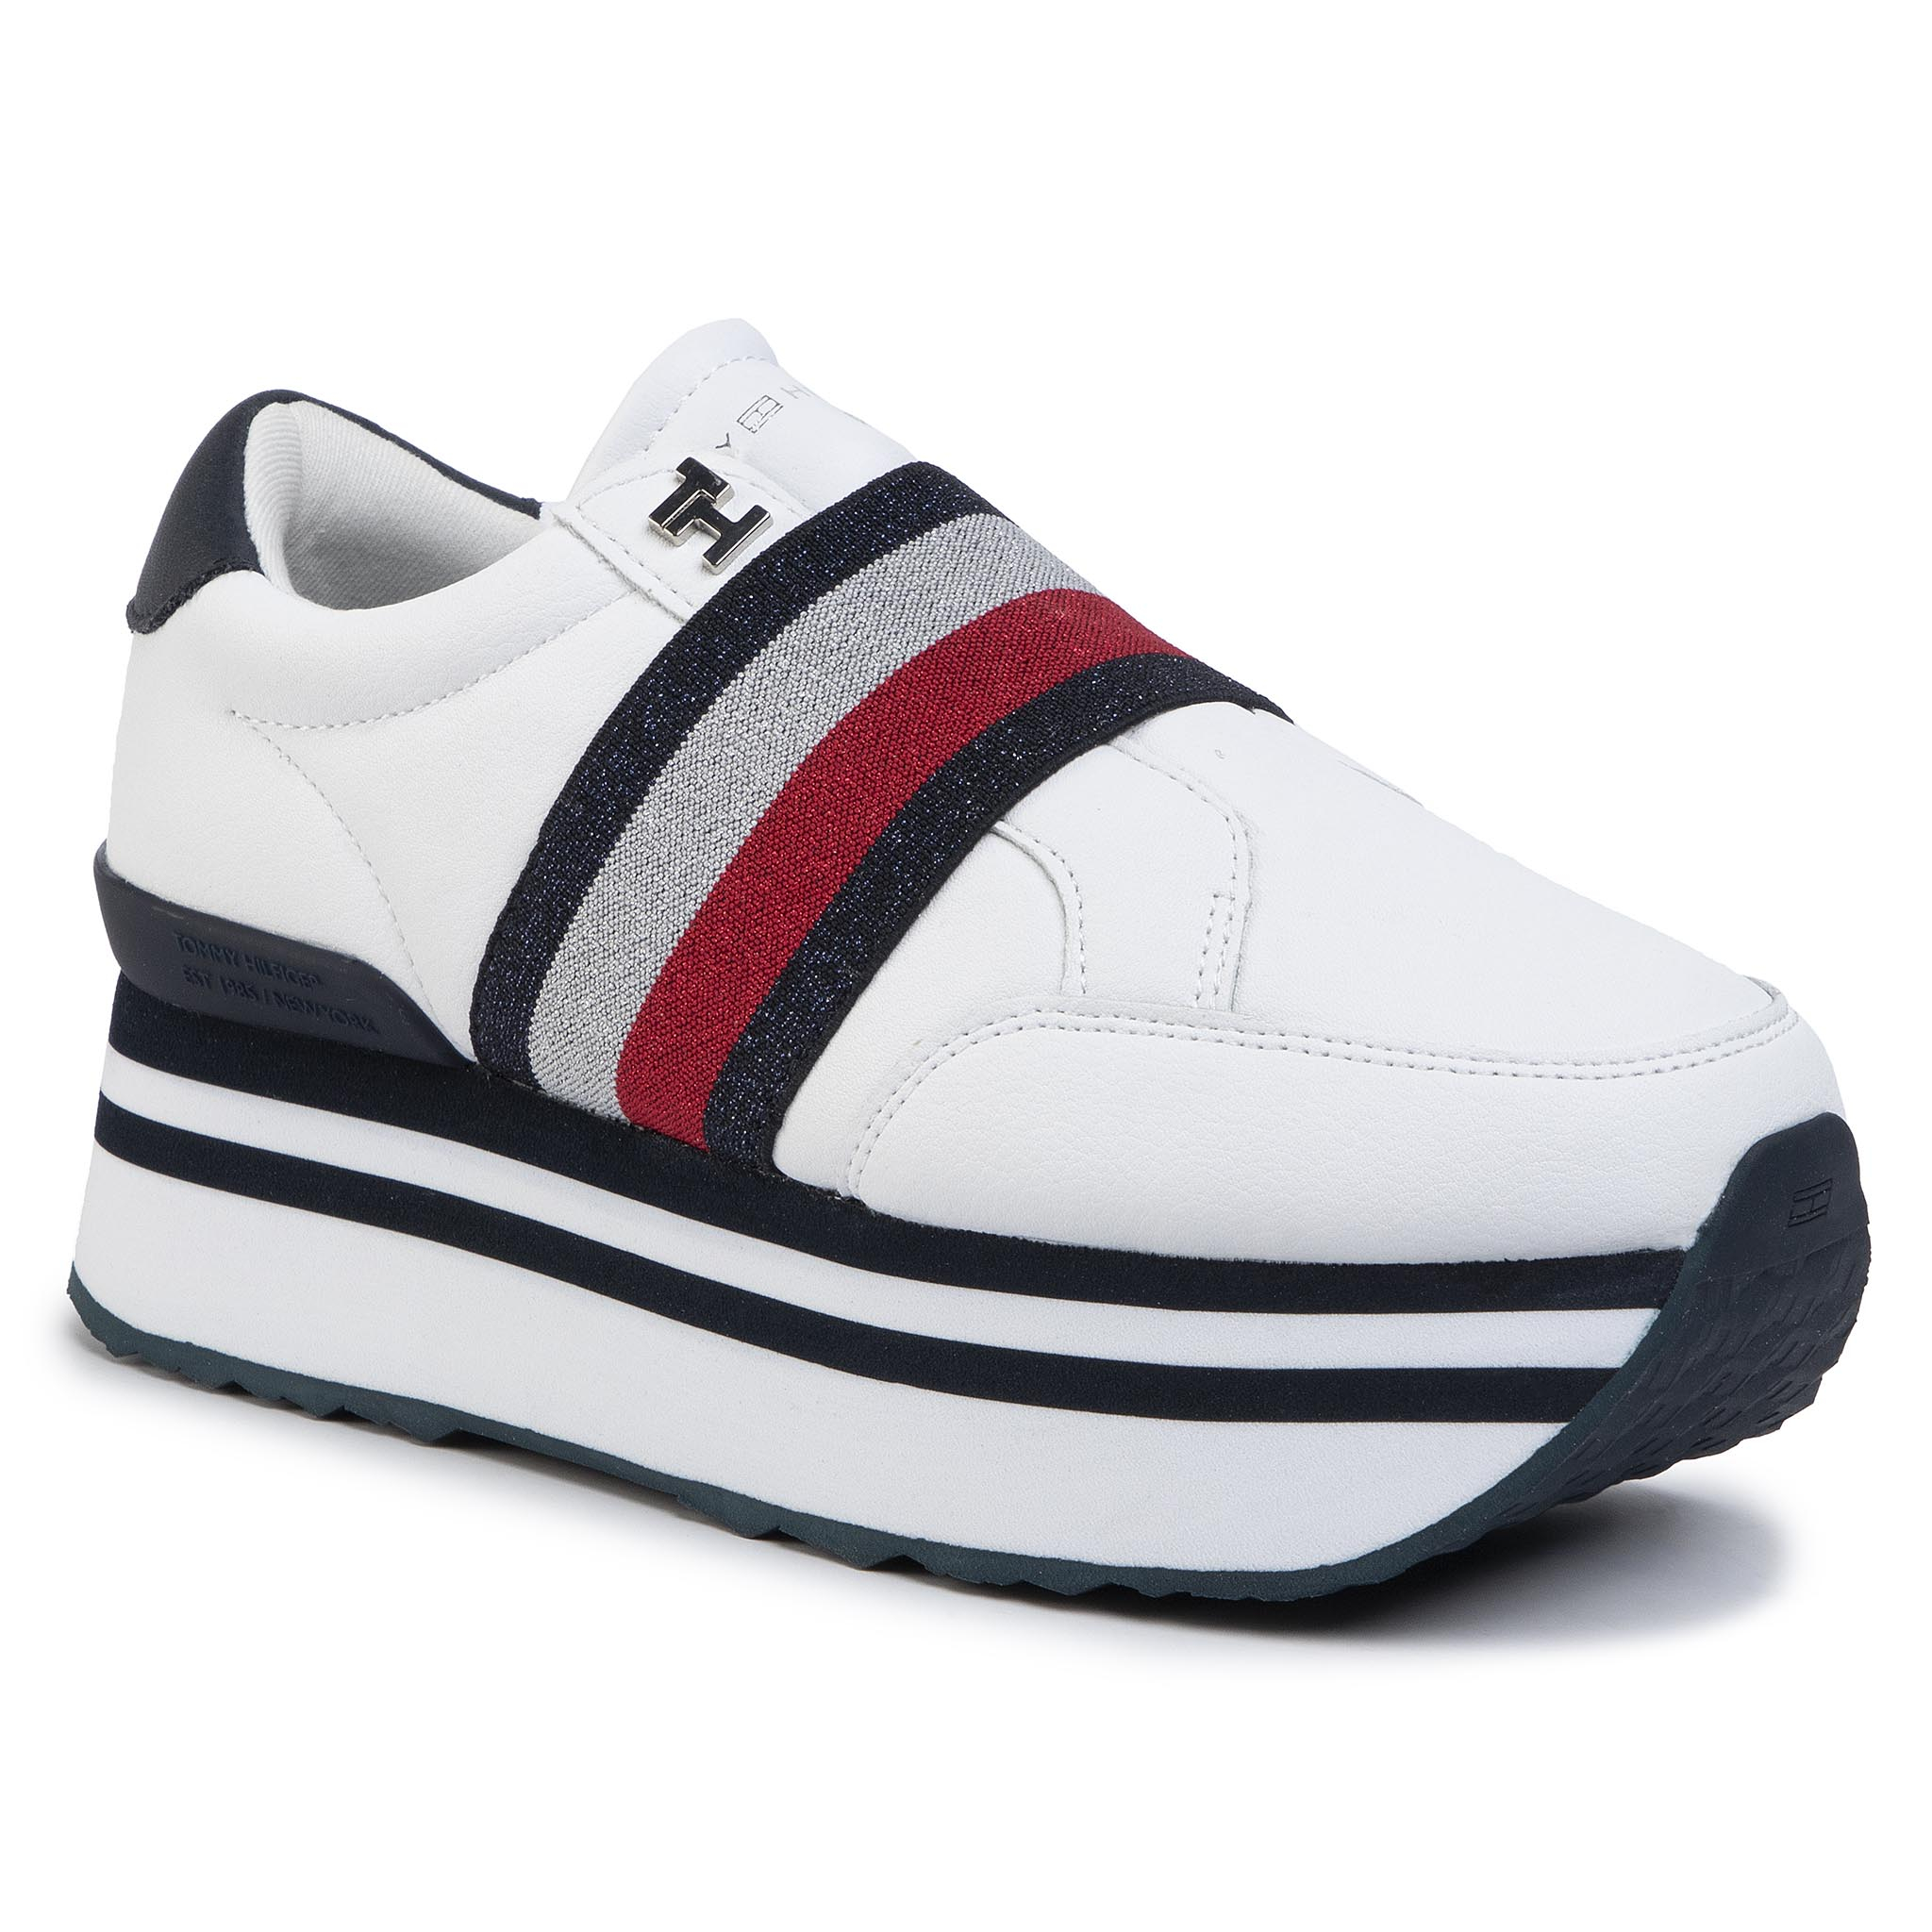 Sneakers TOMMY HILFIGER - Elastic Slip On Fatform Sneaker FW0FW04603 White YBS